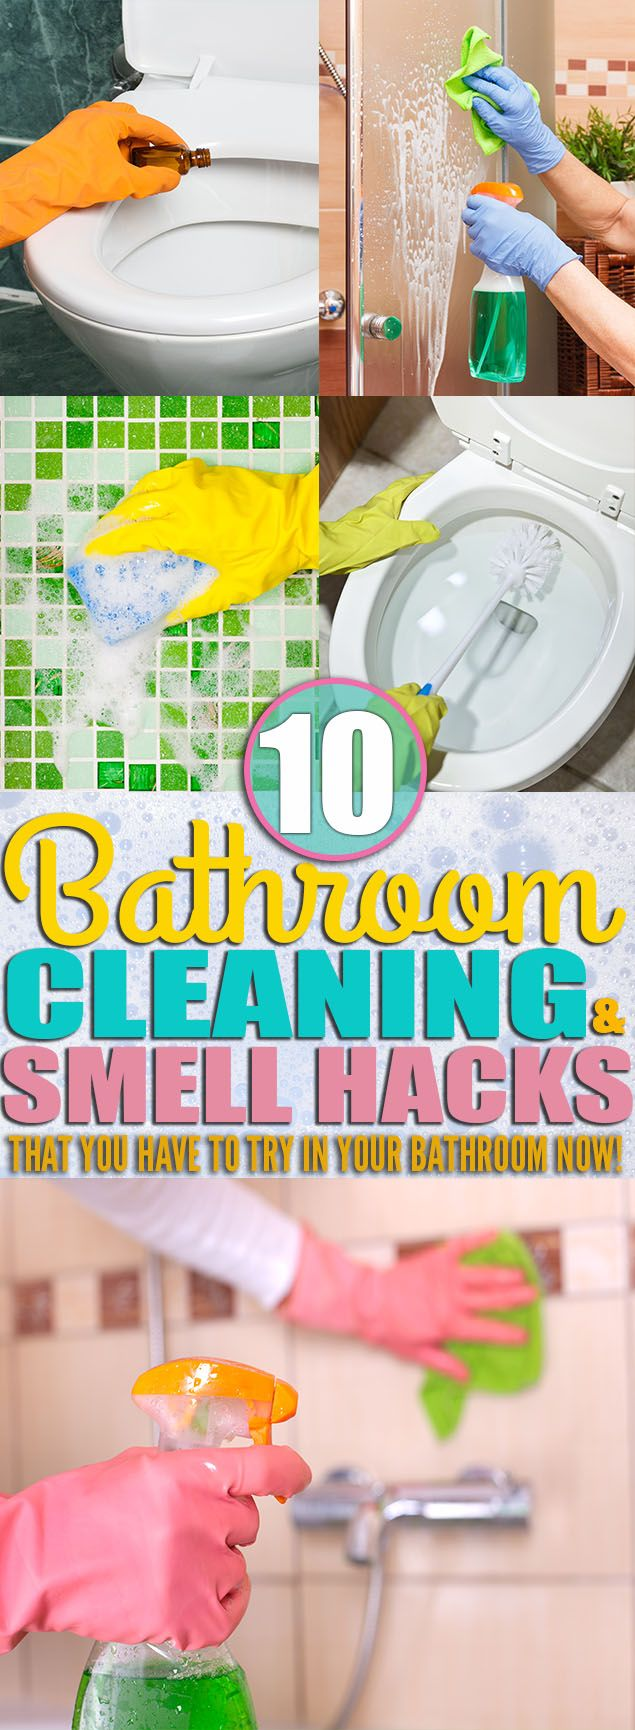 If you're looking for ways to clean your, toilet, shower, and everything else in your bathroom then you need to check out these bathroom cleaning tips. I learned how to clean my bathroom and make my bathroom smell AMAZING from the cleaning hacks and smell hacks in this post! Make your bathroom clean and smell amazing with these  cleaning hacks! You have to try these spring cleaning hacks in your bathroom this spring! #cleaninghacks #cleaningtips #bathroom #springcleaning #bathroomhacks